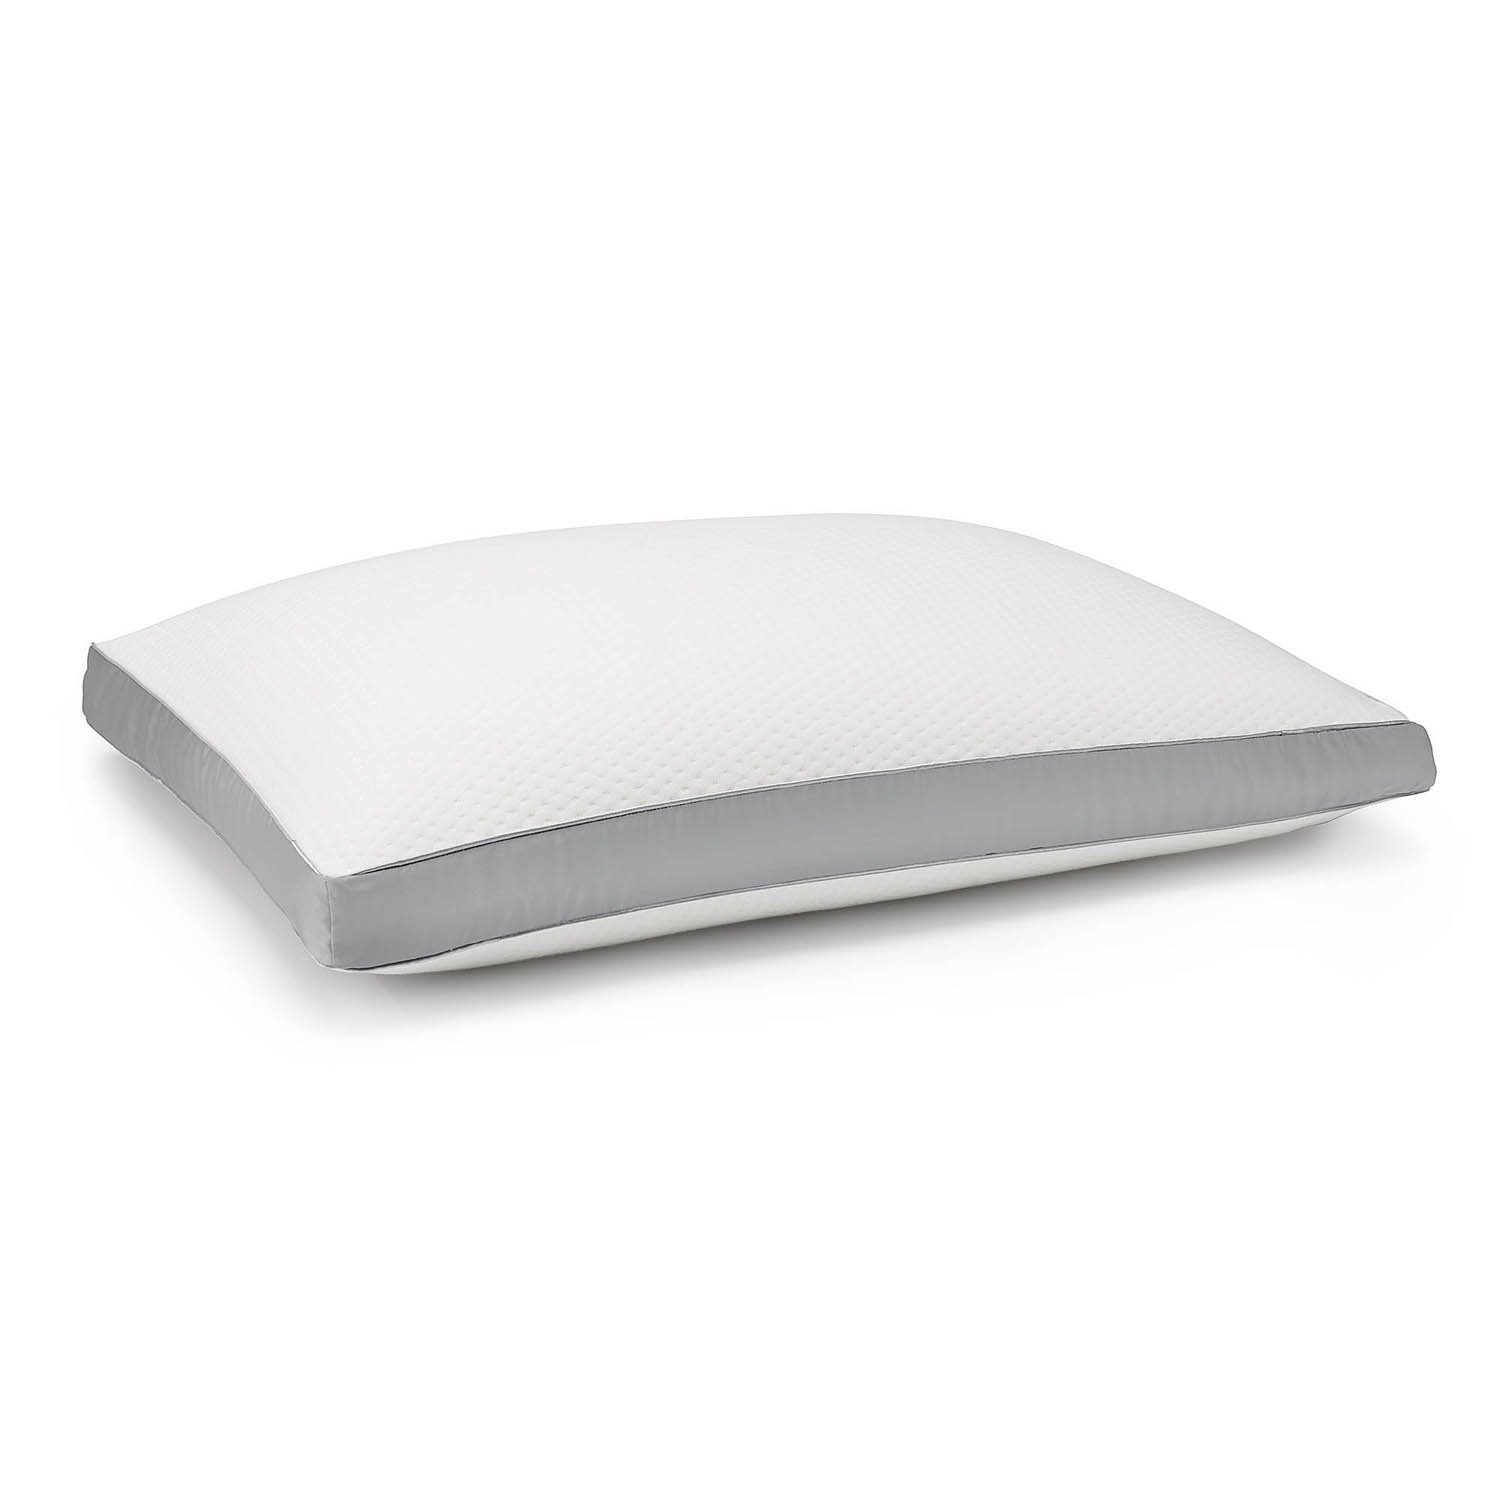 Top 10 Best Memory Foam Pillow (2020 Review & Buying Guide) 9